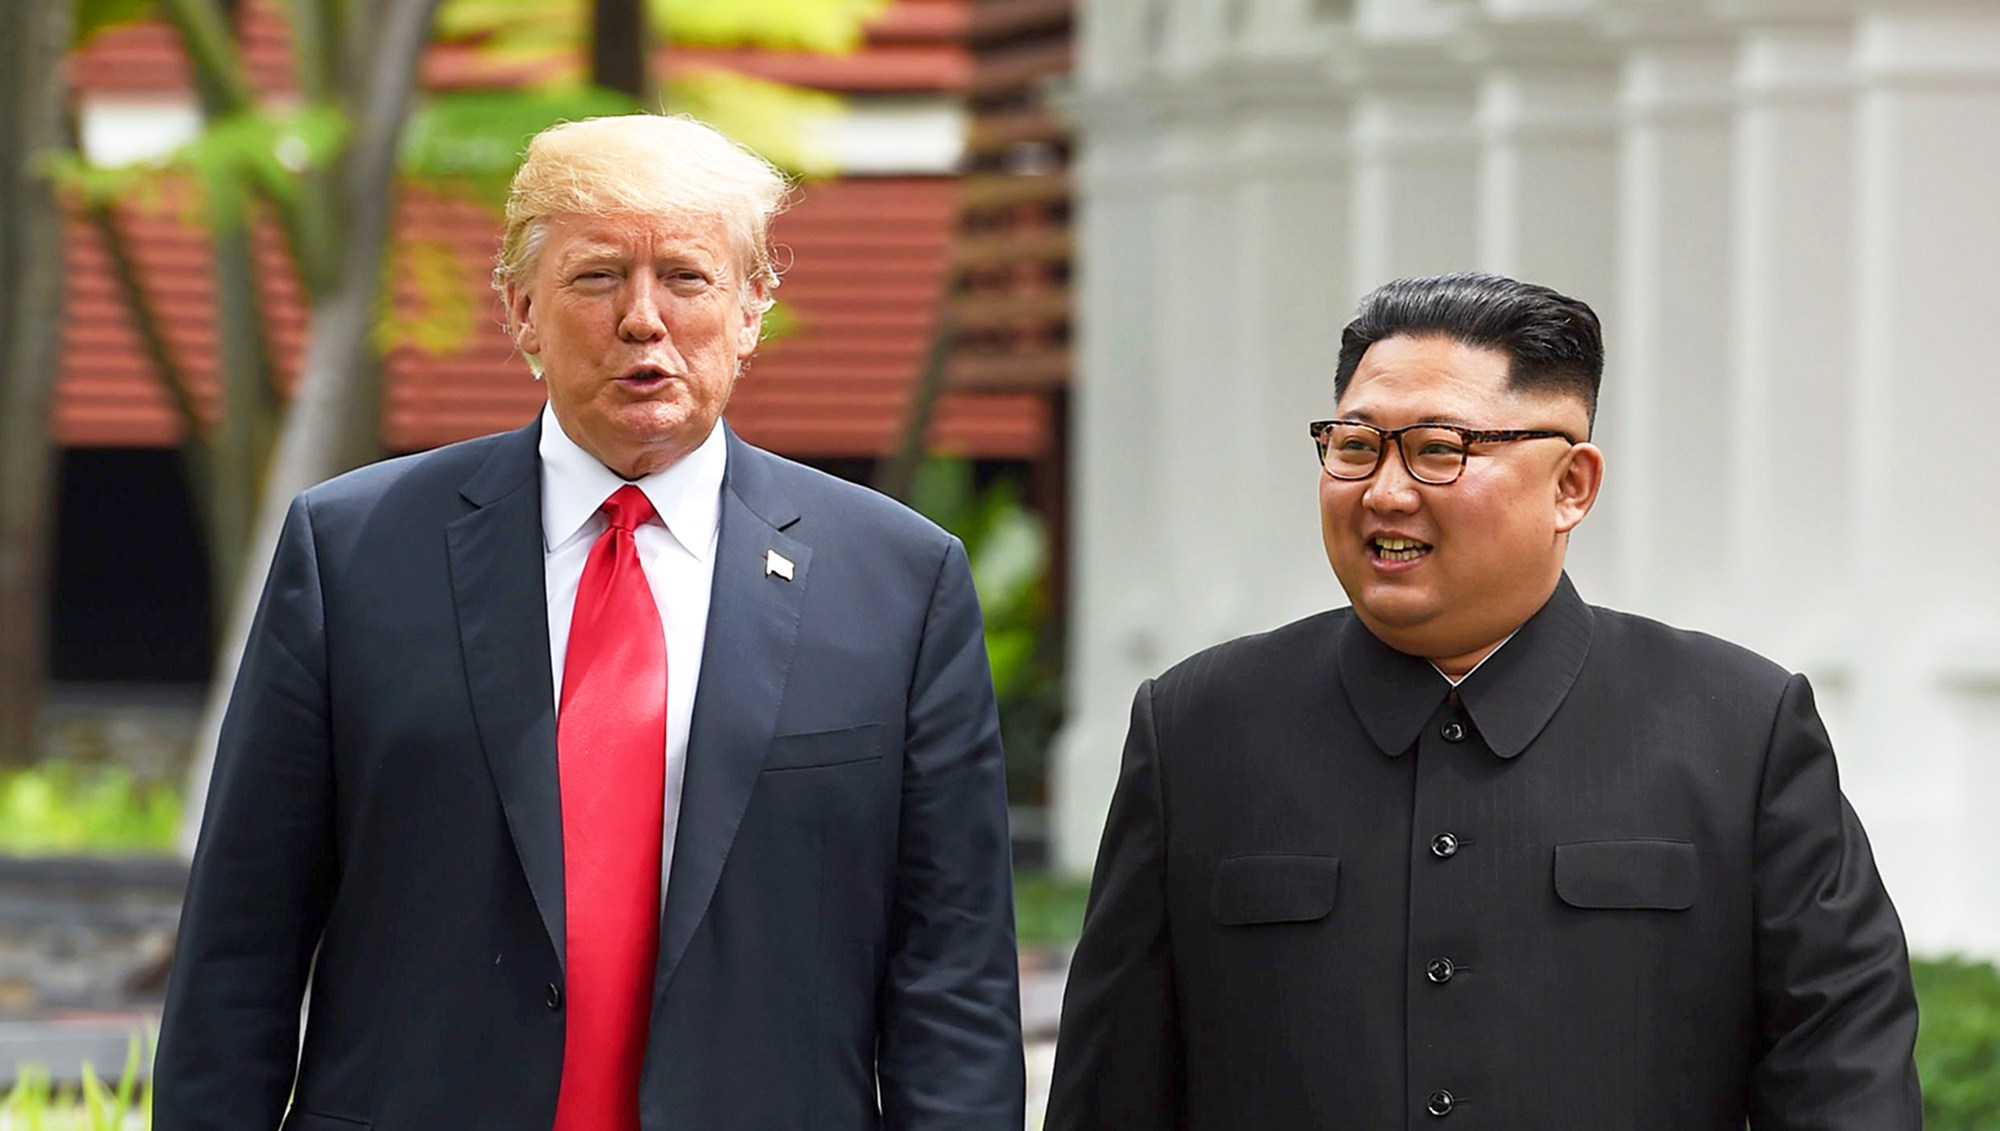 Donald Trump and Kim Jong Un during their historic US-North Korea summit at the Capella Hotel on Sentosa island in Singapore on June 12, 2018.